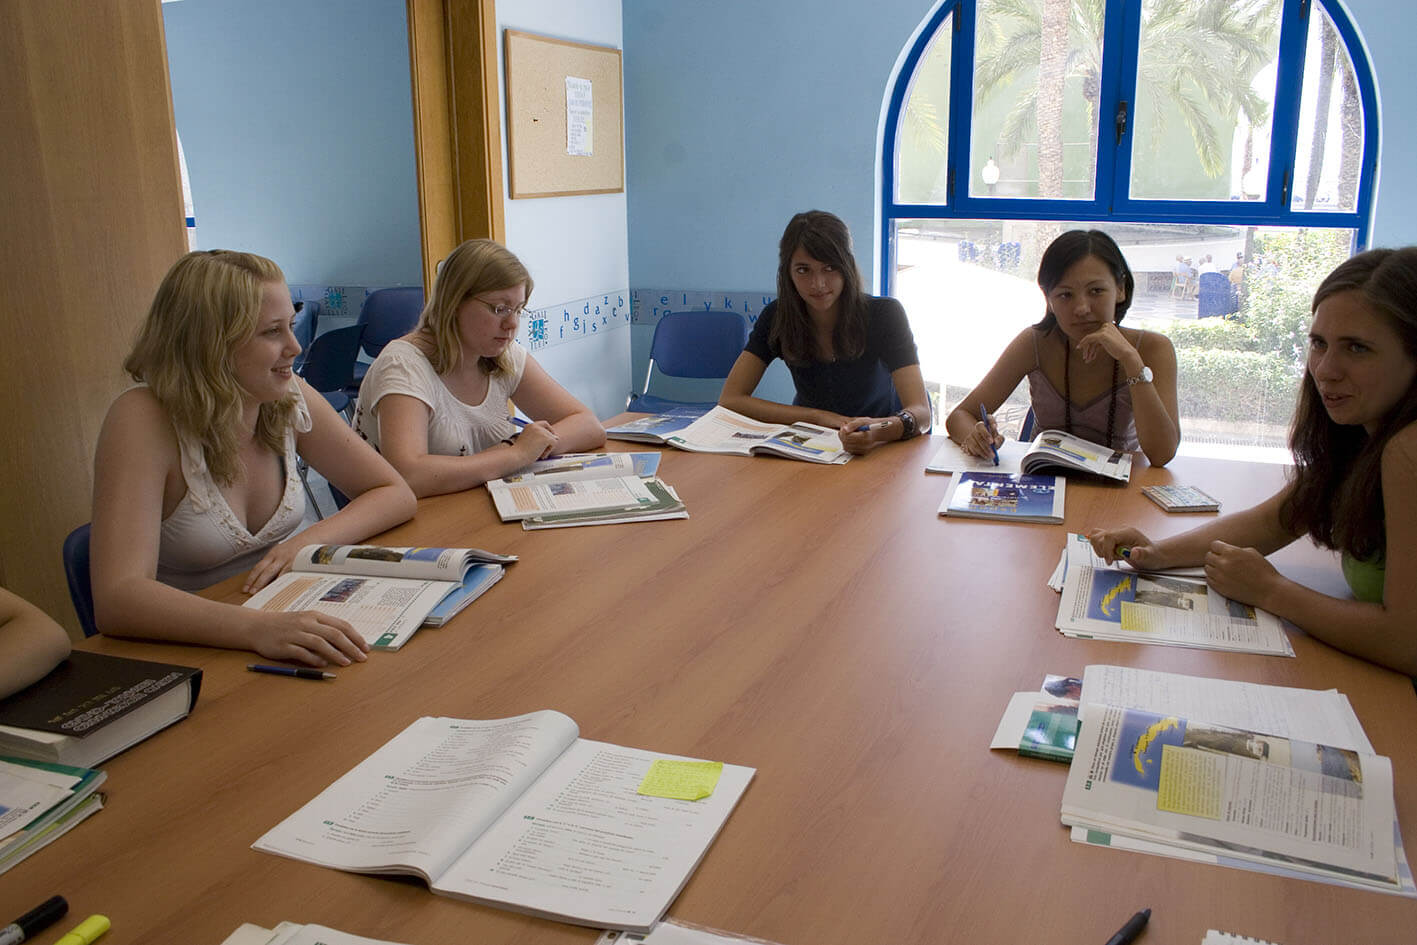 s-w-e-p offers Spanish courses in Spain, our partner school in Alicante is located in the center of the city